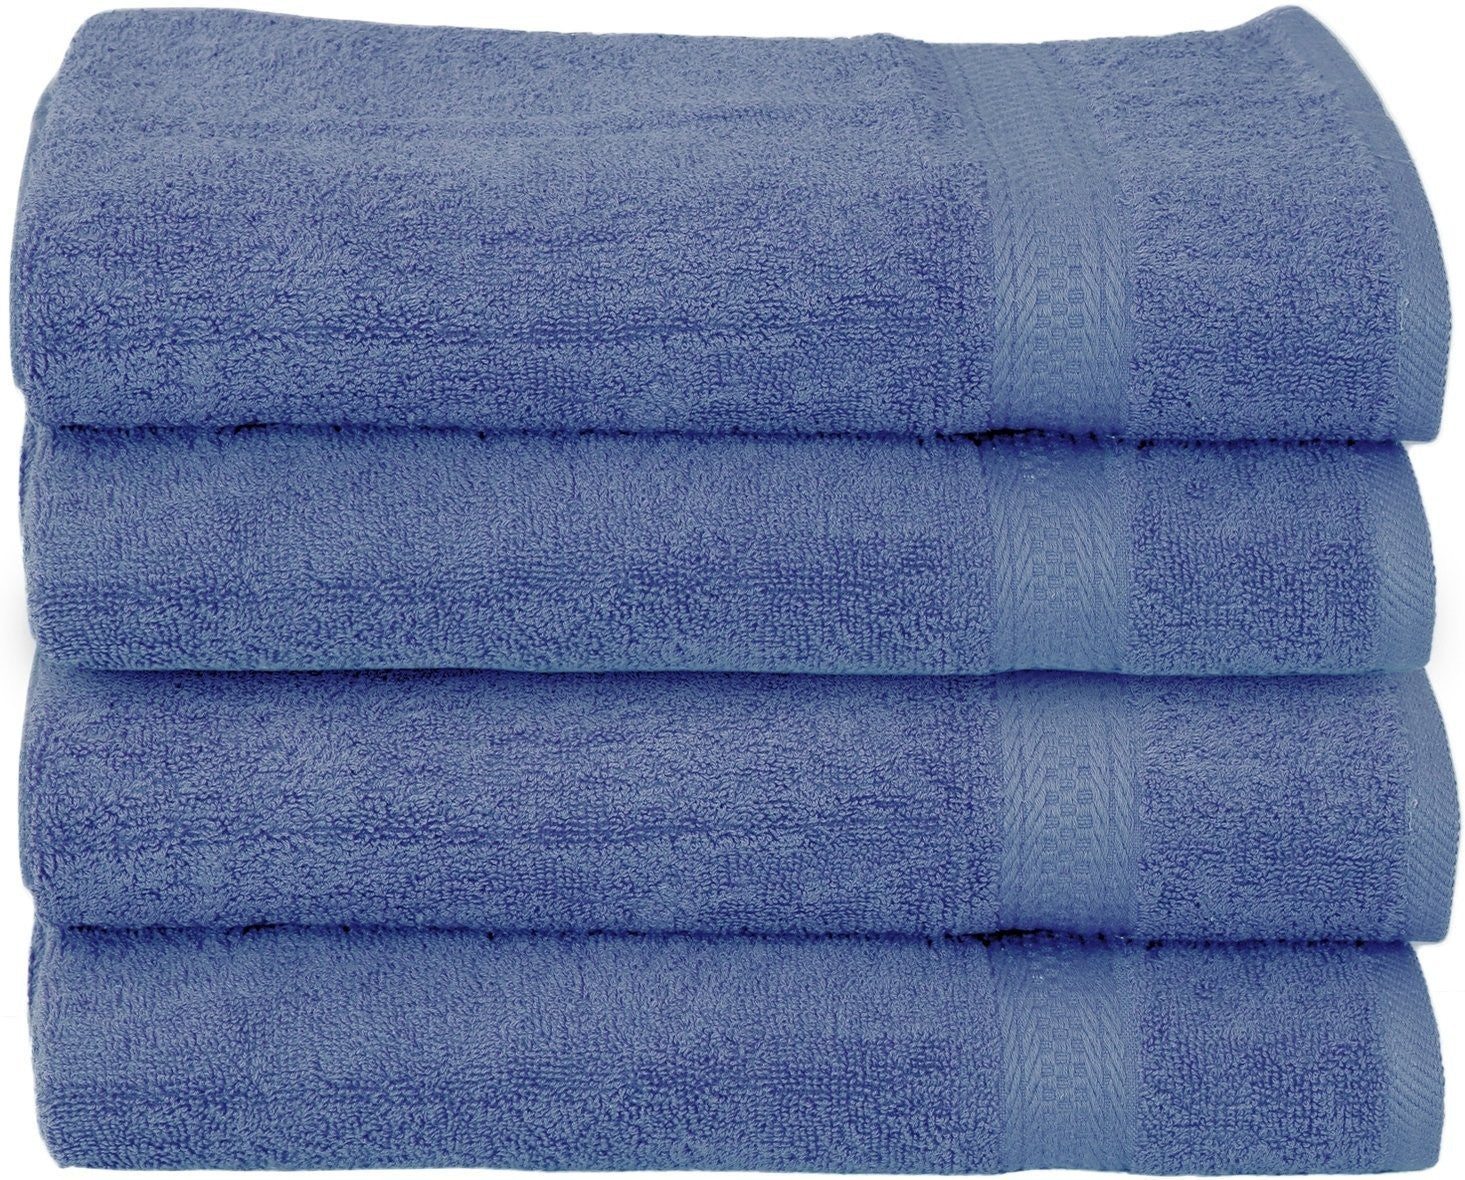 Luxury Hand Towels (Electric Blue-4 Pack)